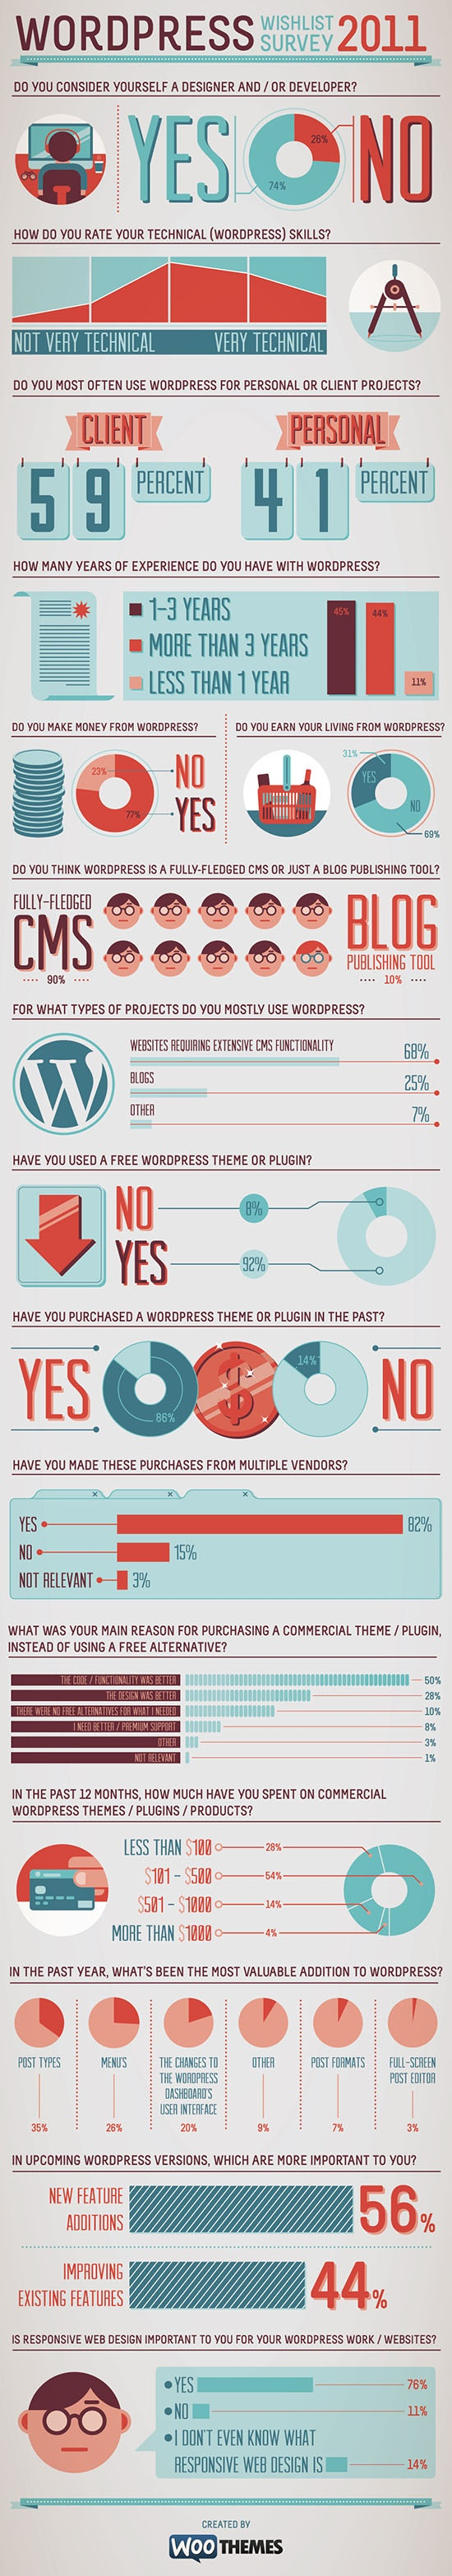 Revisiting WordPress Expectations for 2012